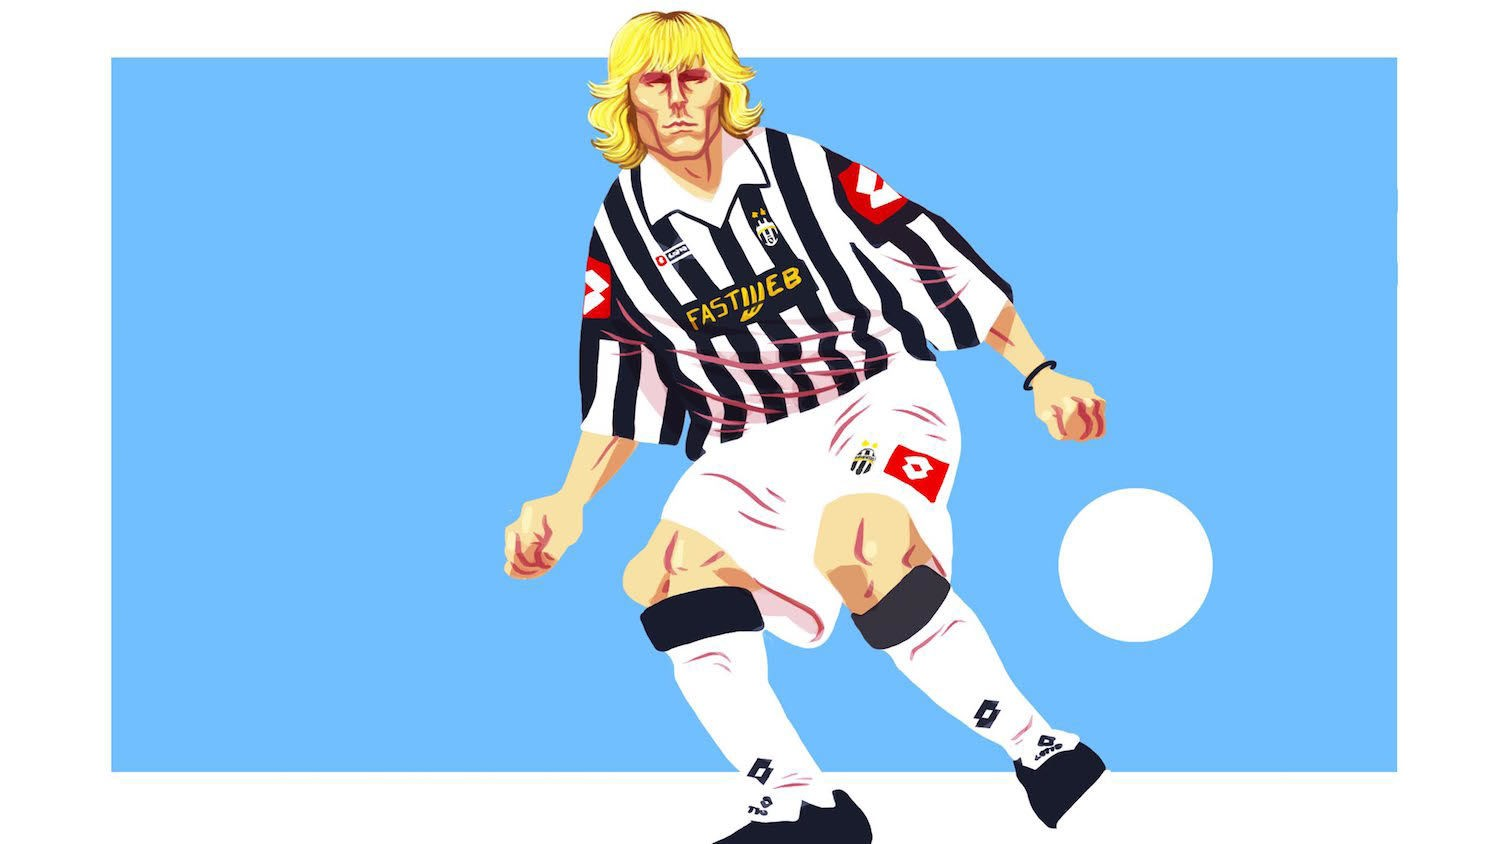 The Cult: Pavel Nedved